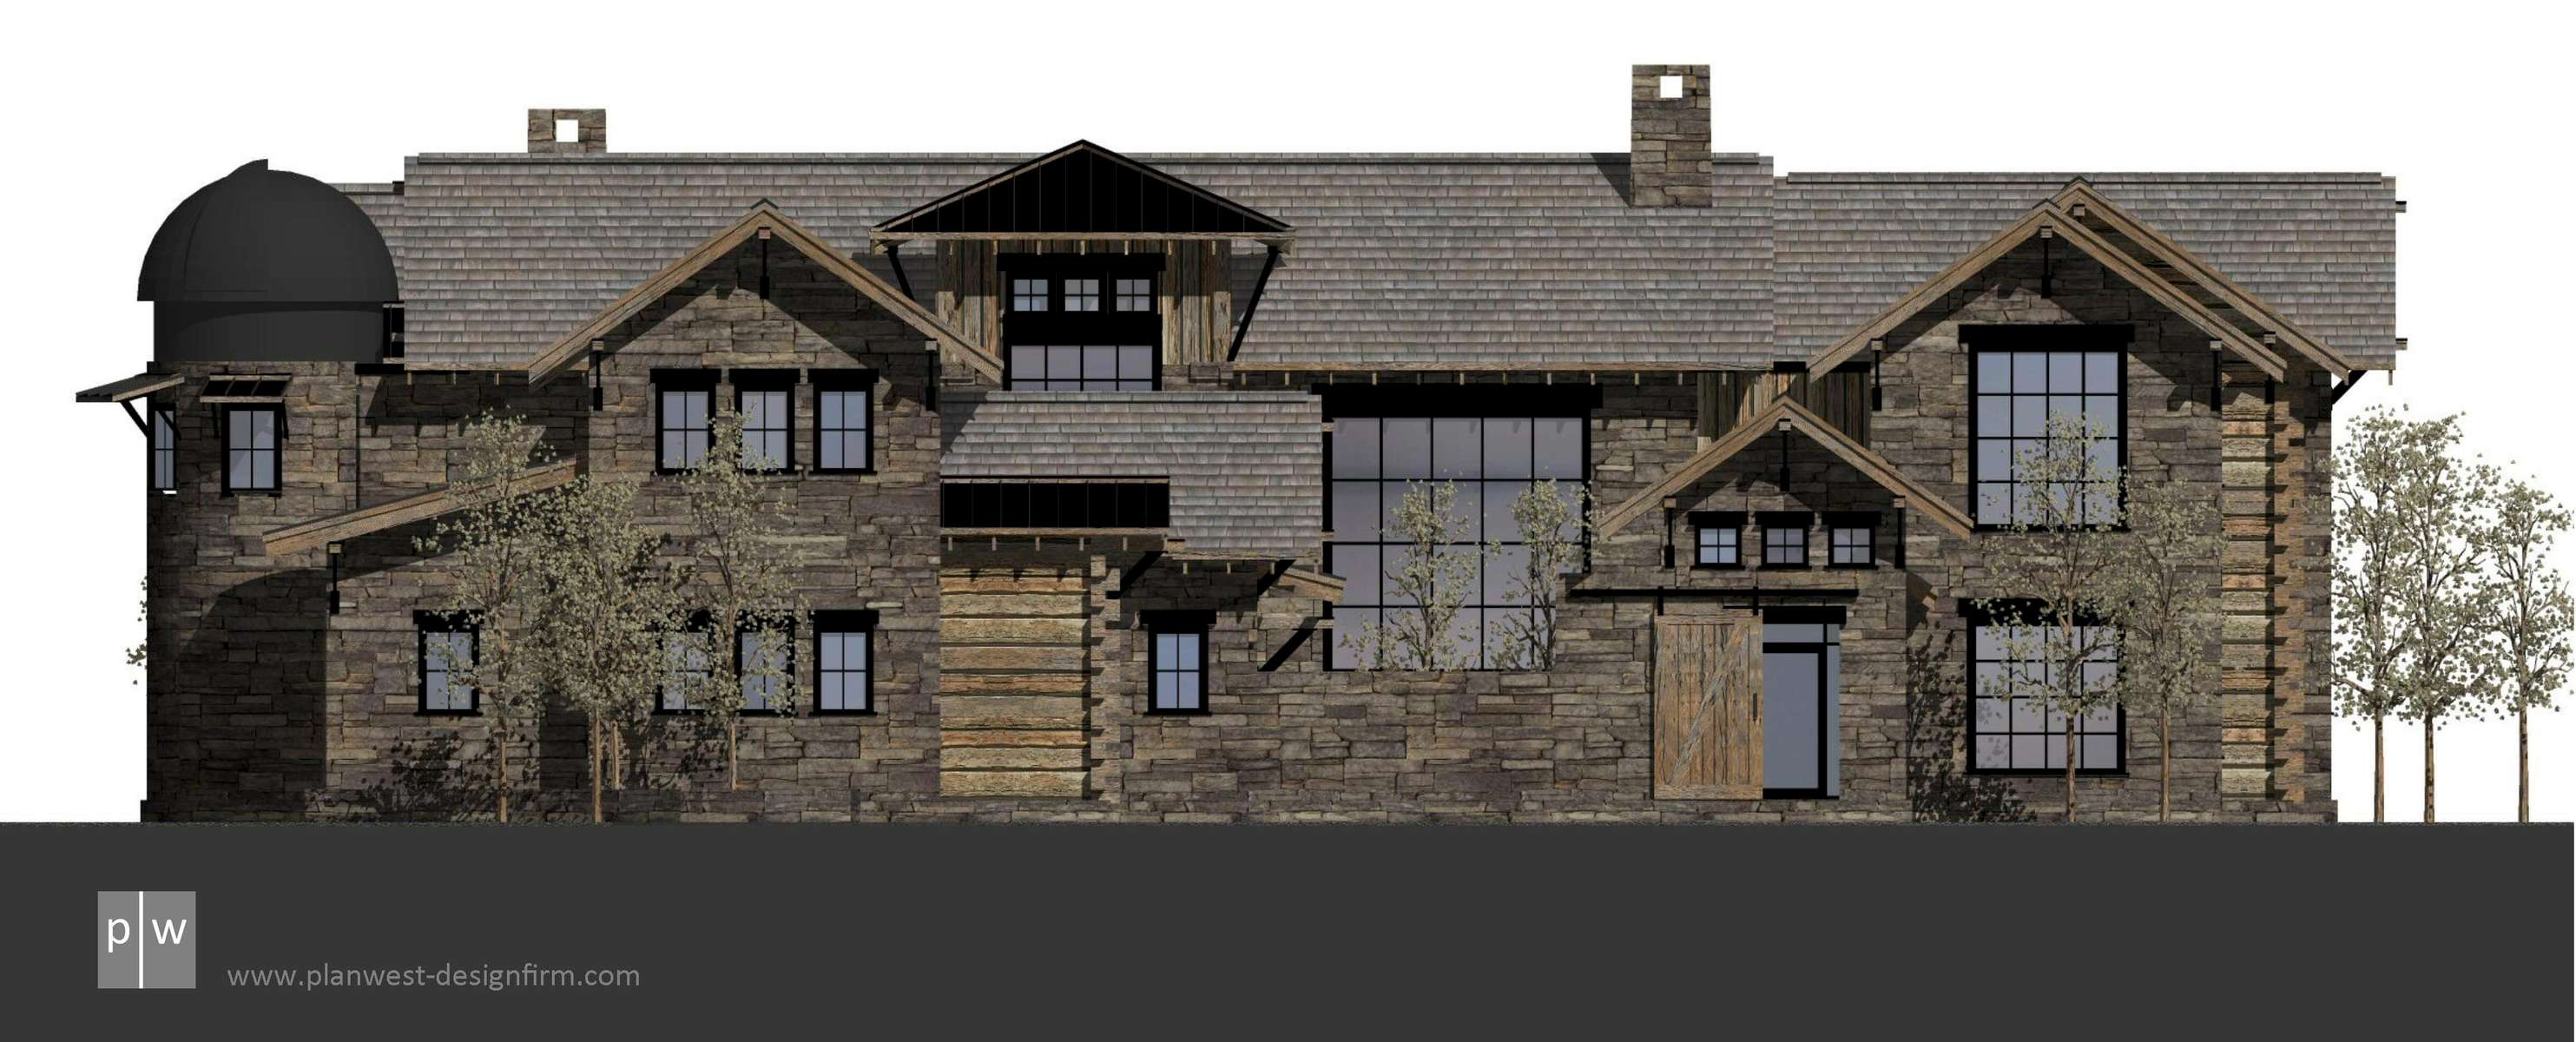 plan-west-design-firm-_projects-in-process-534